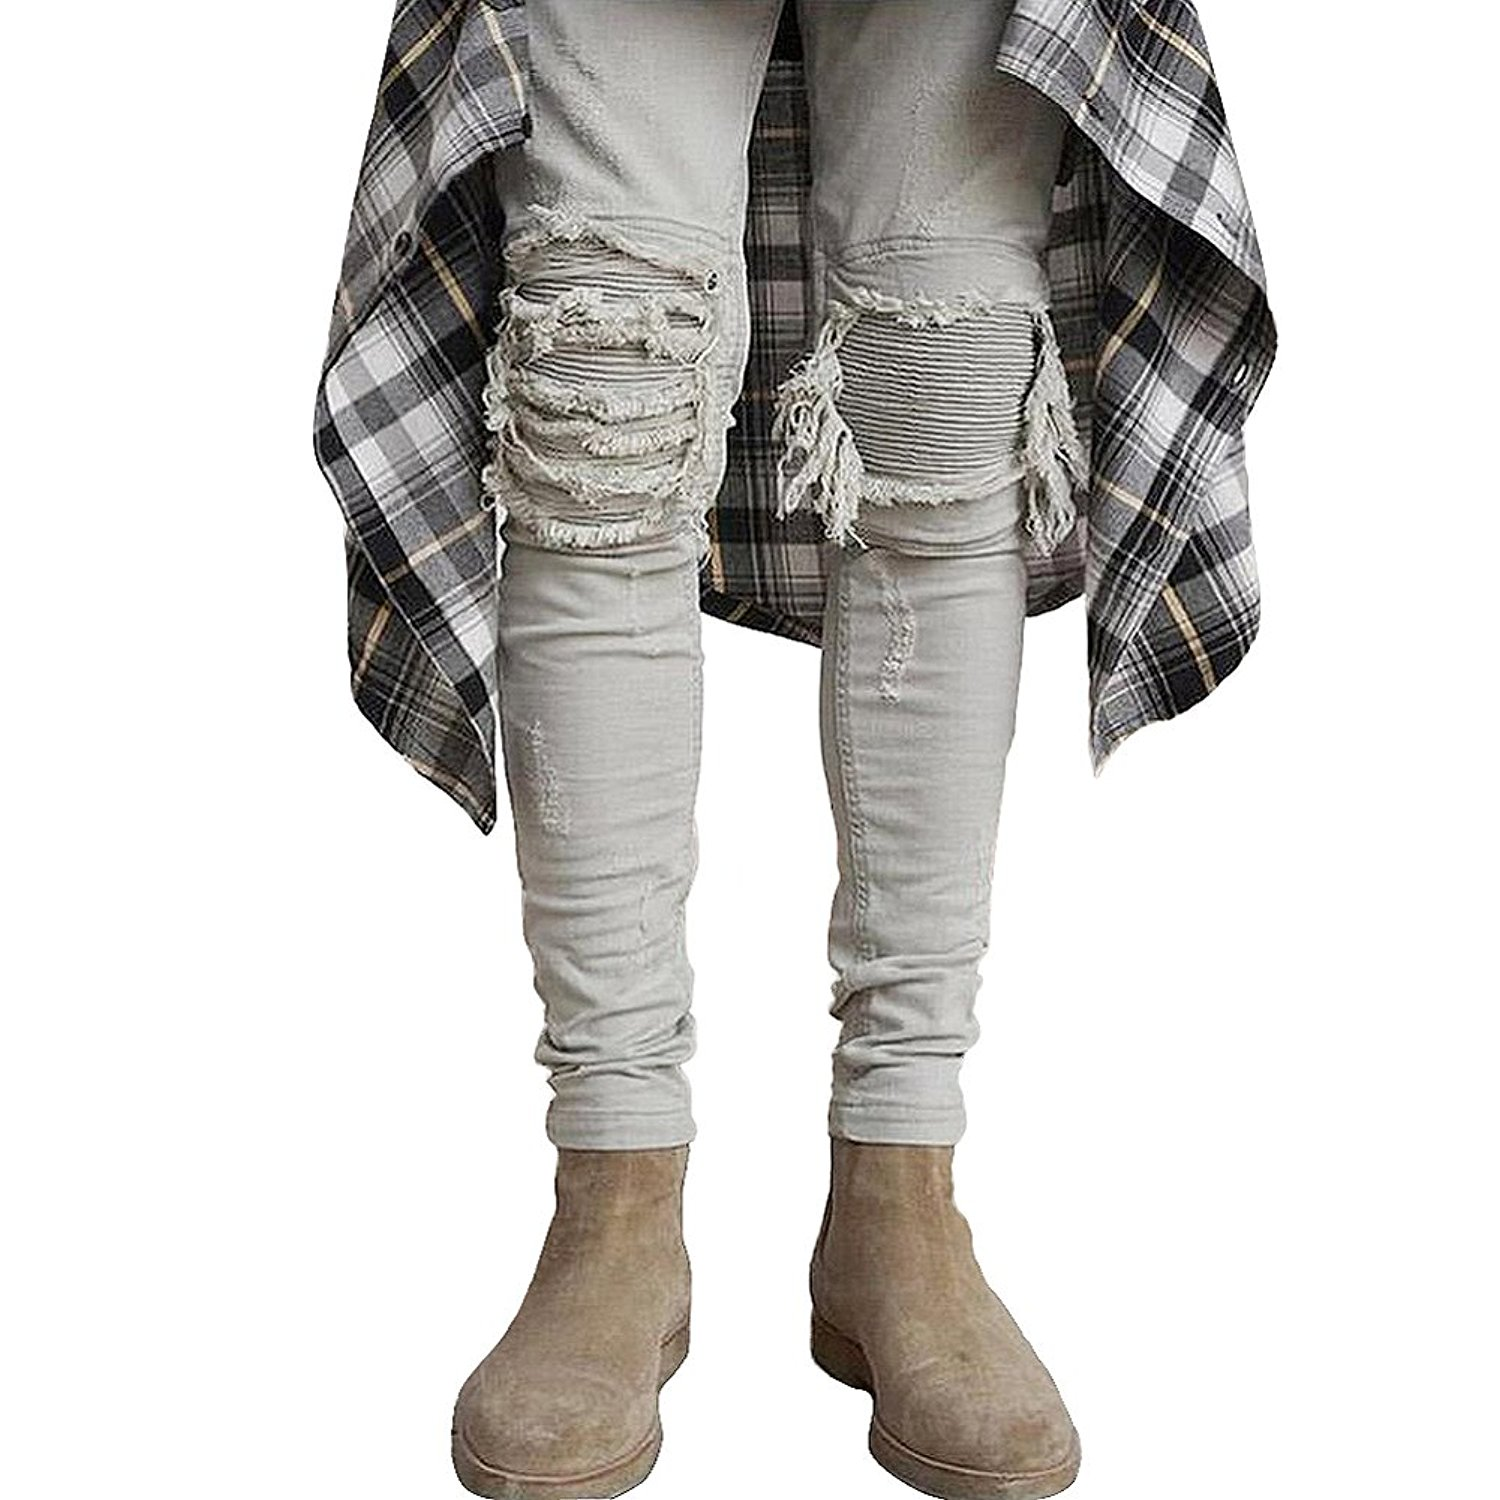 1944864e74 Buy Skinny Ripped Jeans for Men Distressed Biker kanye west hba ...